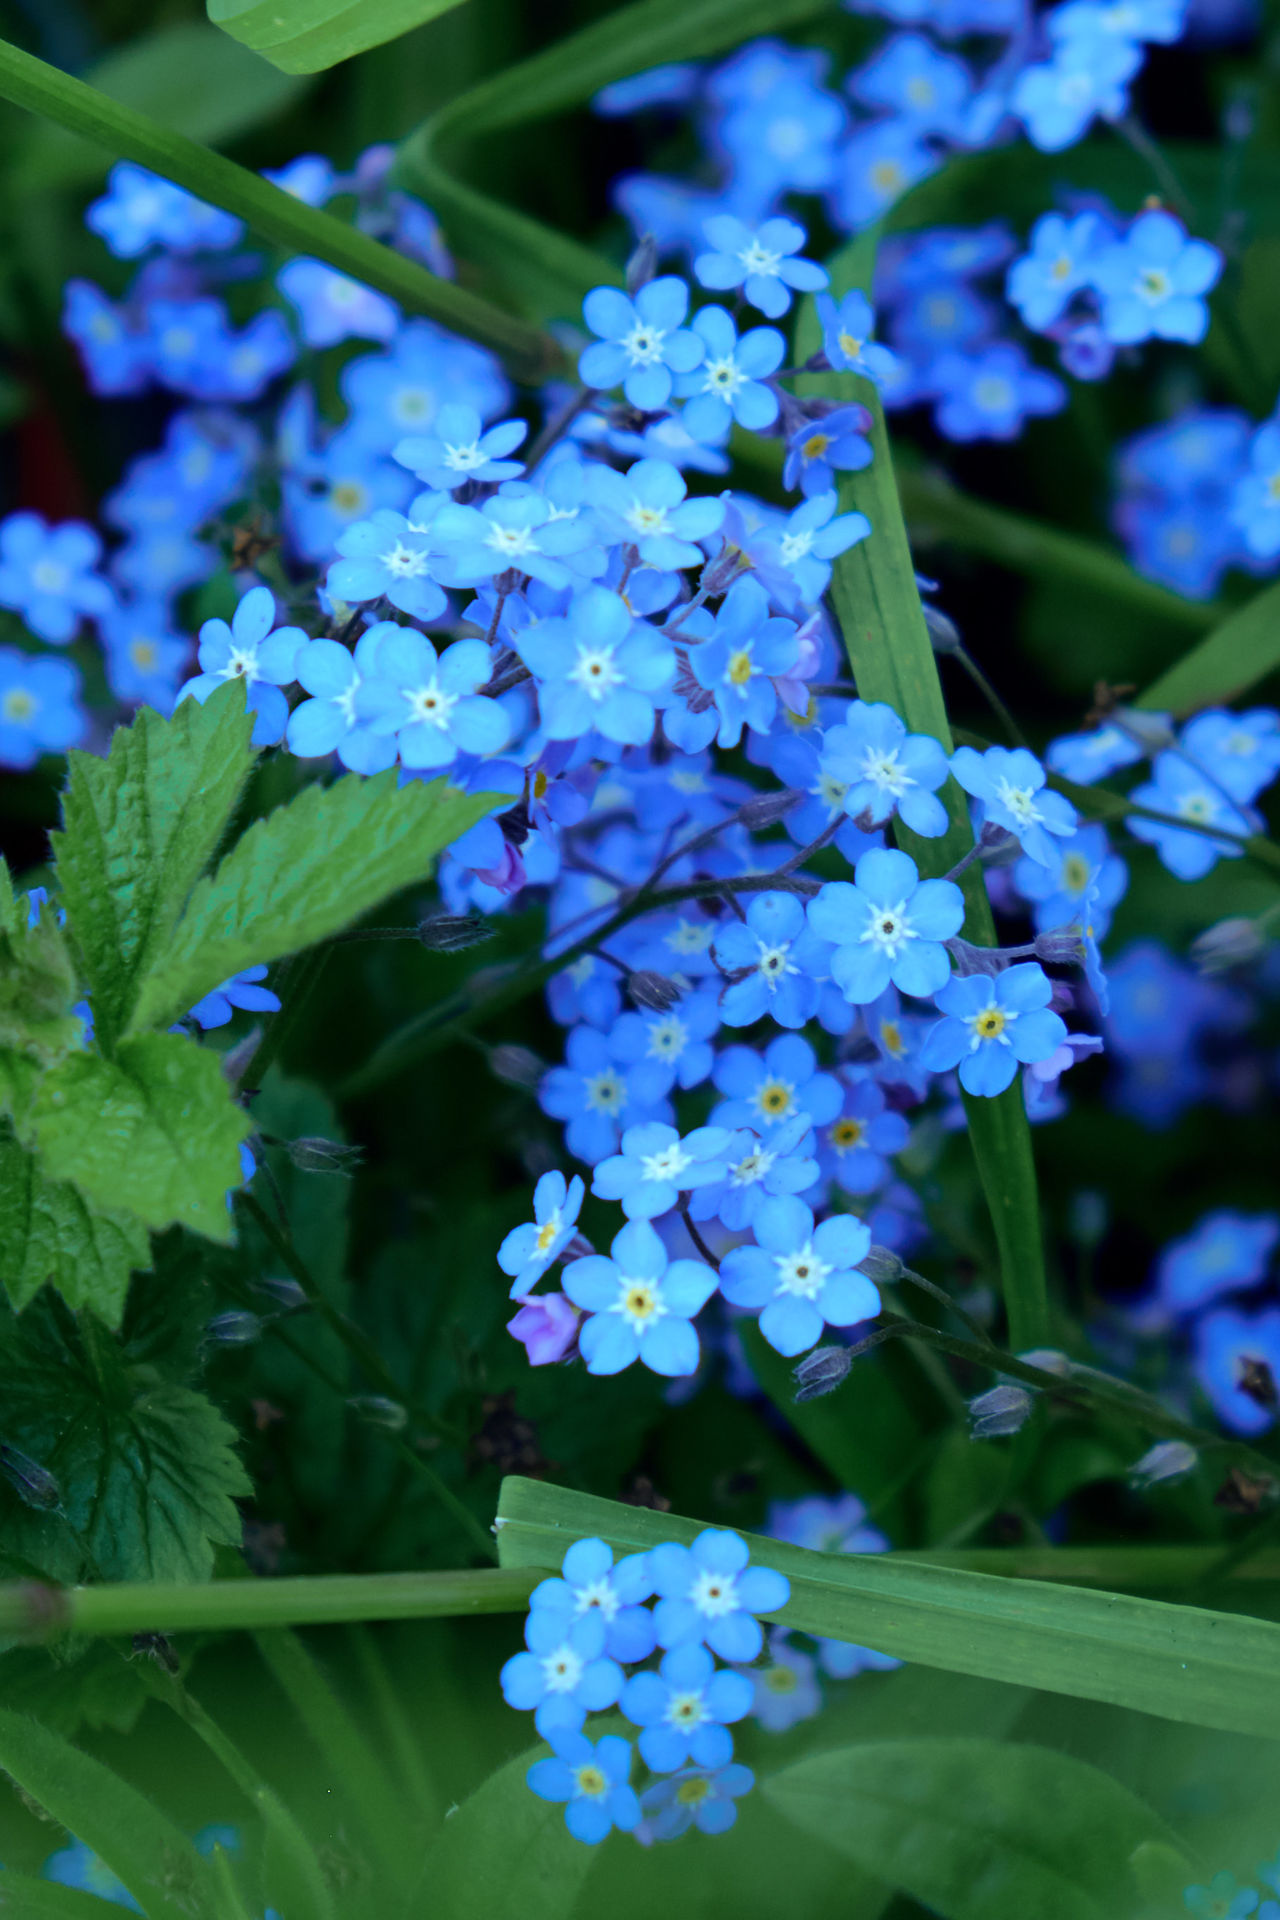 Forget me nots - Beauty In Nature Blooming Botany Close-up Flower Flower Head Forget Me Not Fragility Freshness Green Color Growth Nature Outdoors Petal Plant Purple Scented